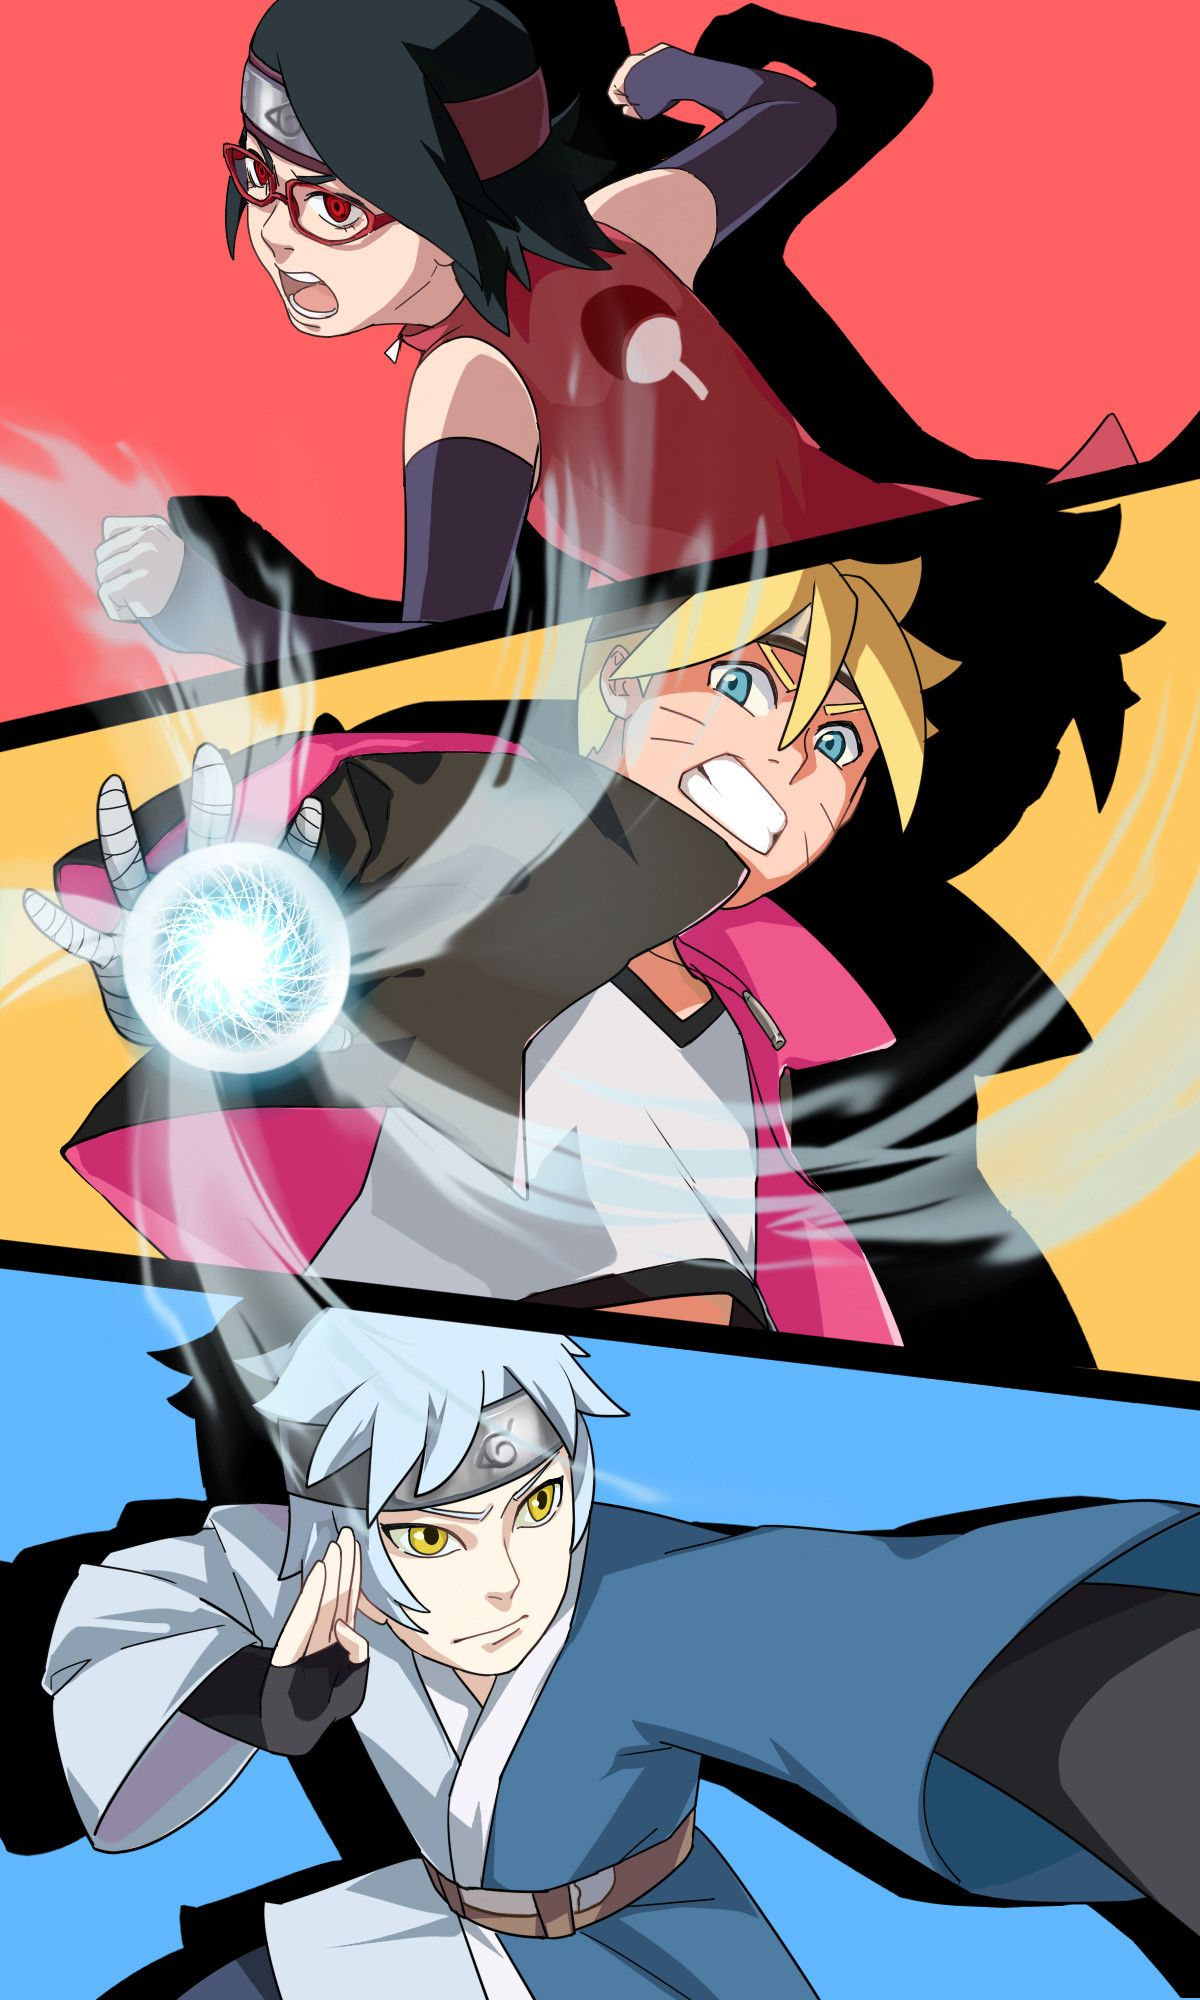 Boruto Naruto The Movie Wallpapers 63 Images Animasi Seni